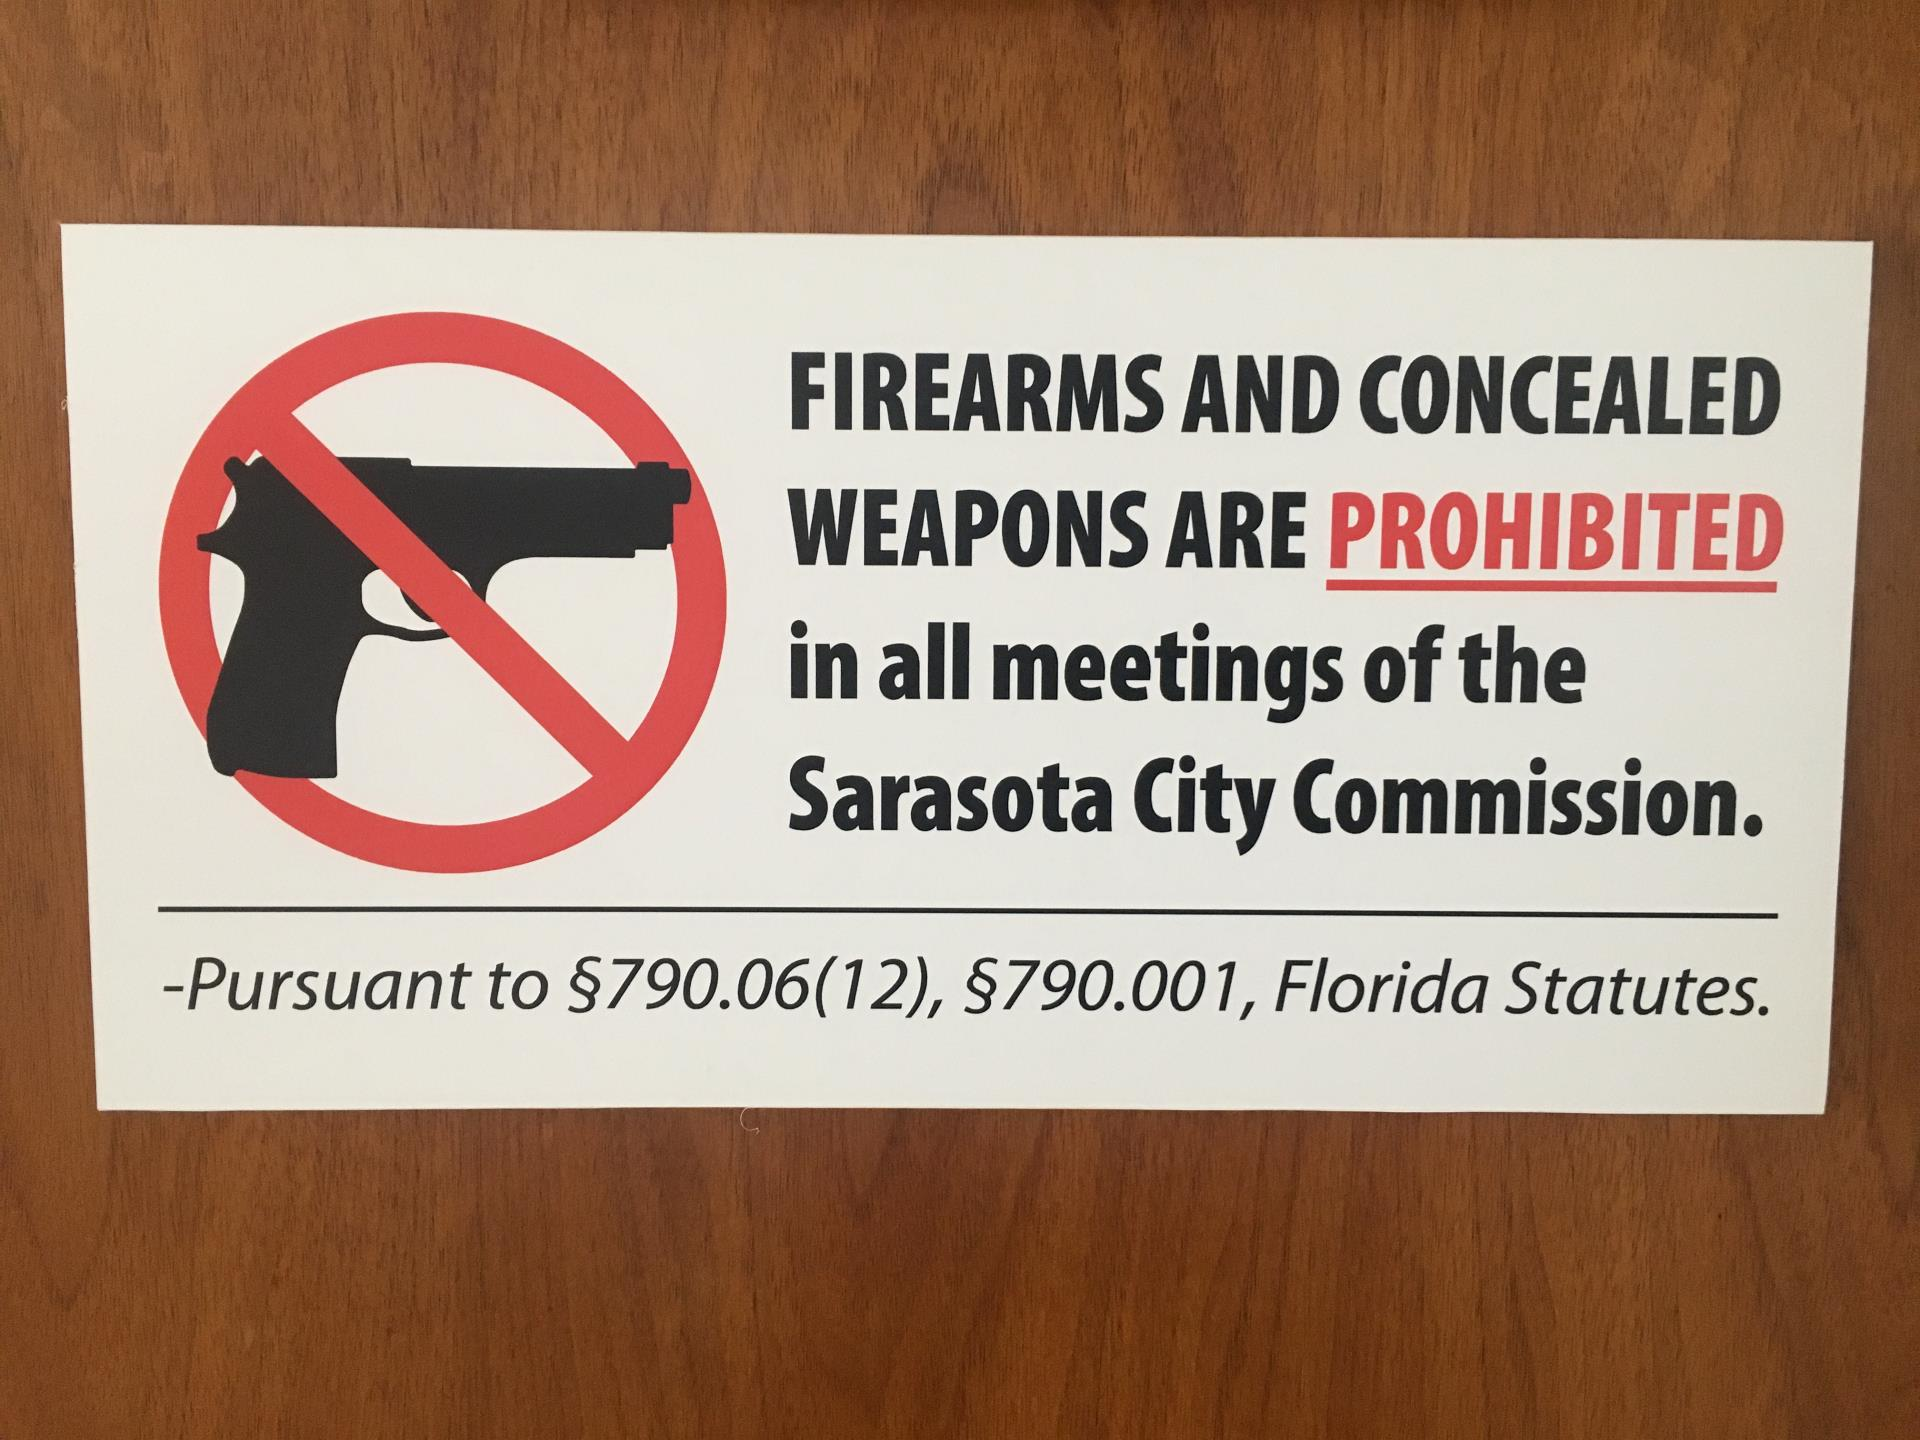 Sign prohibiting firearms at City Commission meetings, per Florida statutes.